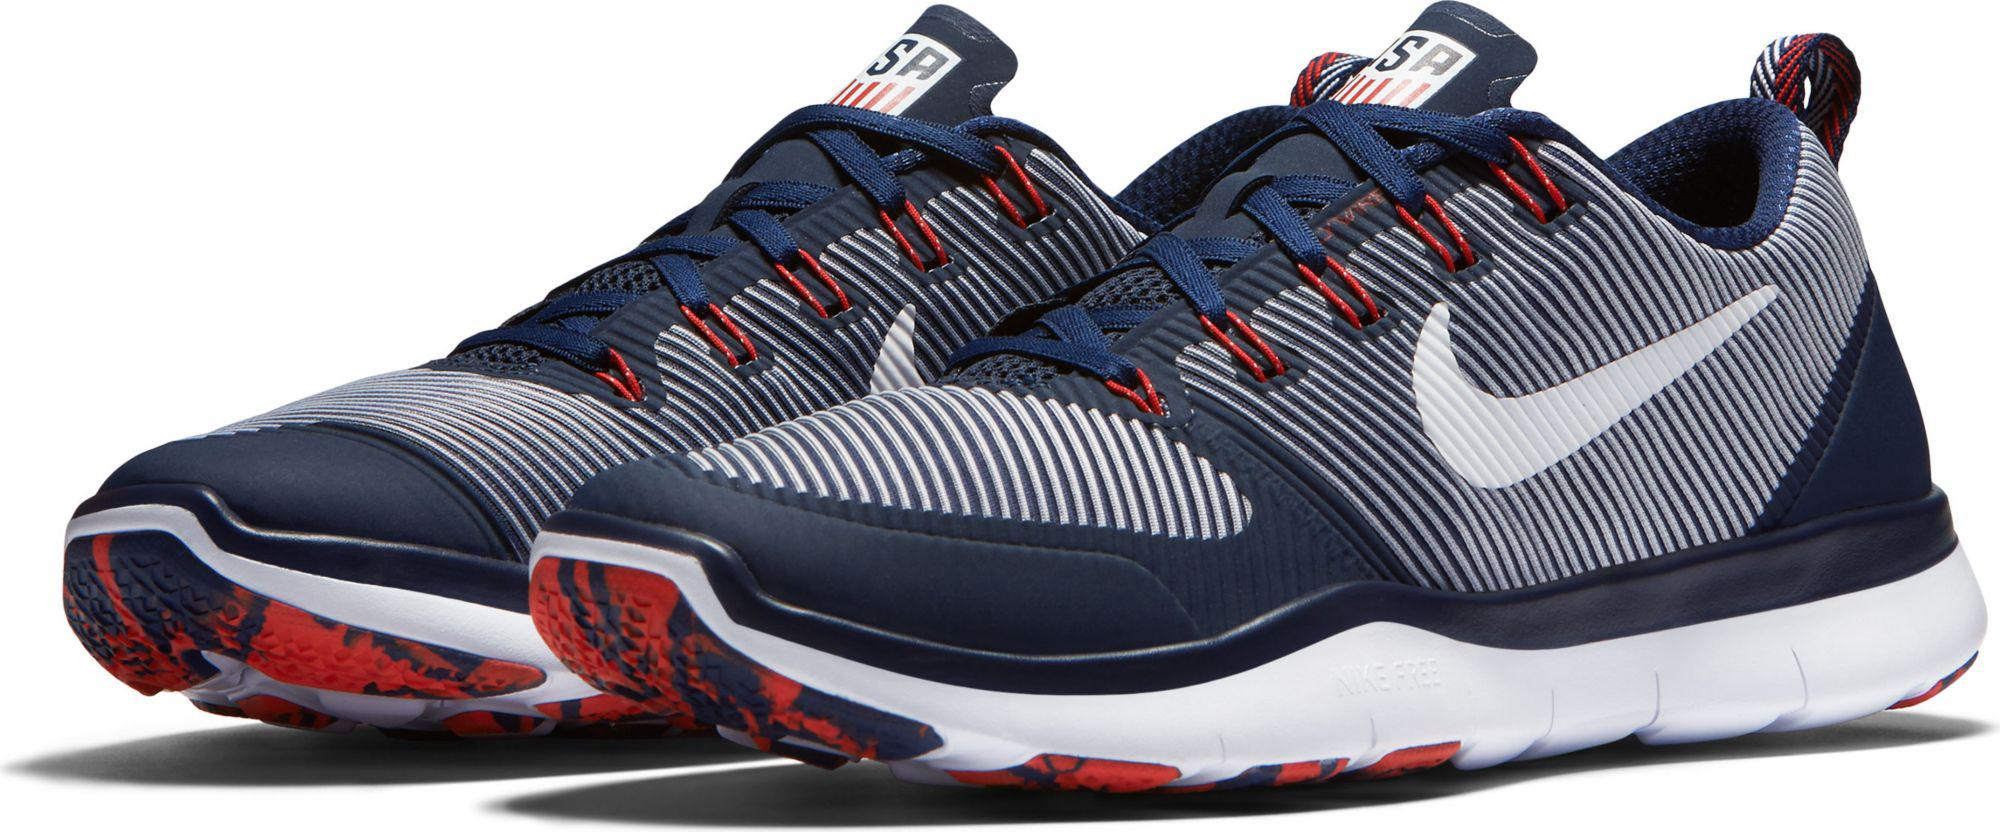 quality design 0460e 3e478 Nike Free Train Versatility Usa Training Shoes in Blue for Men - Lyst